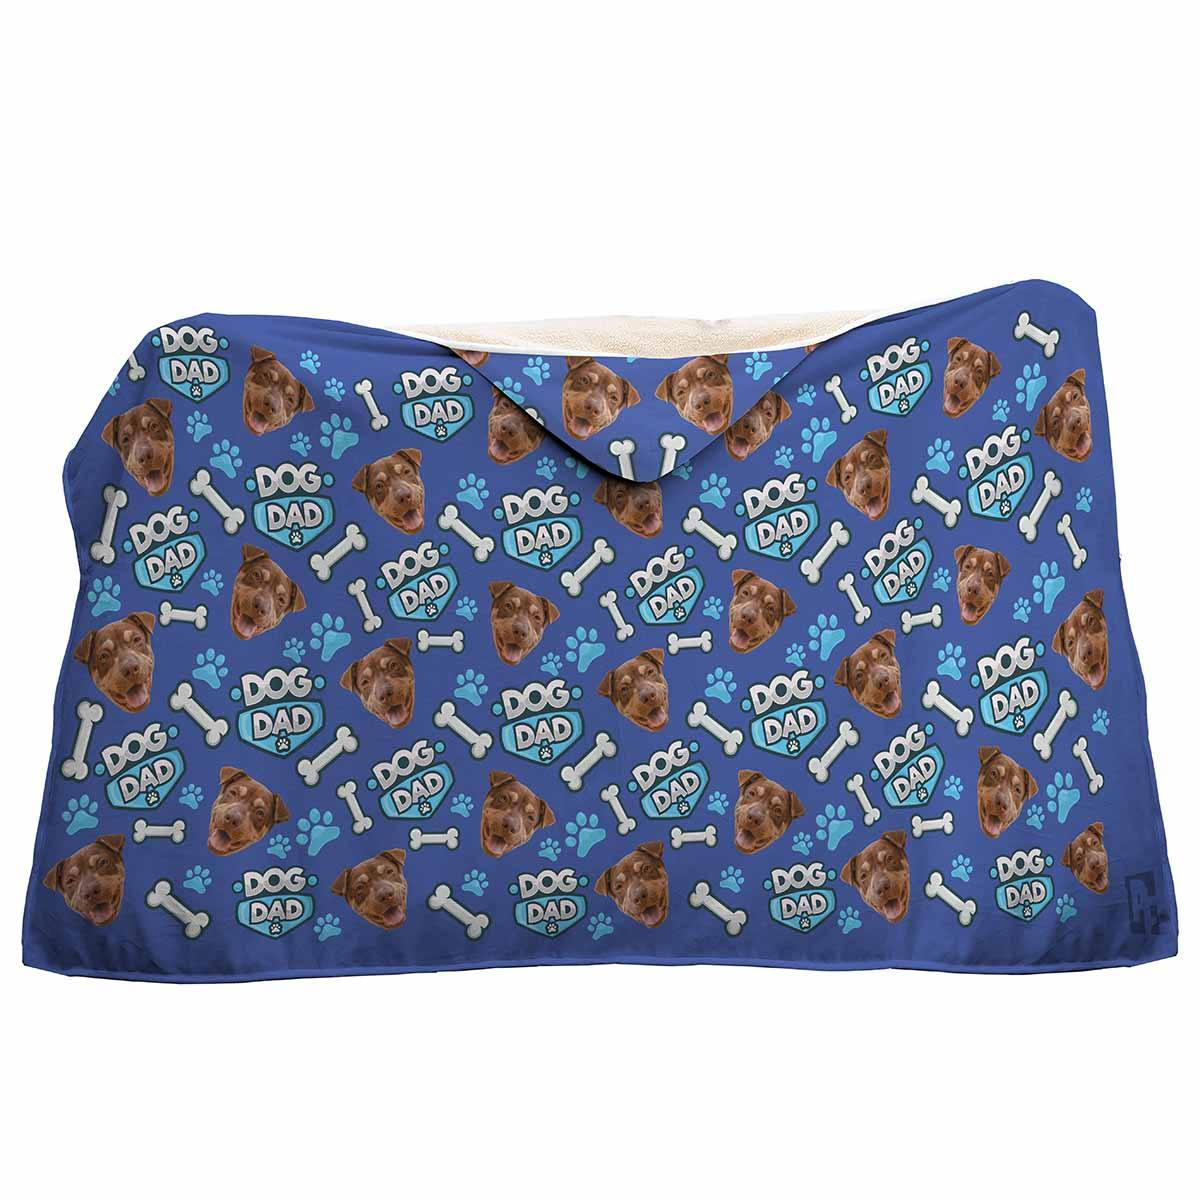 darkblue Dog Dad hooded blanket personalized with photo of face printed on it